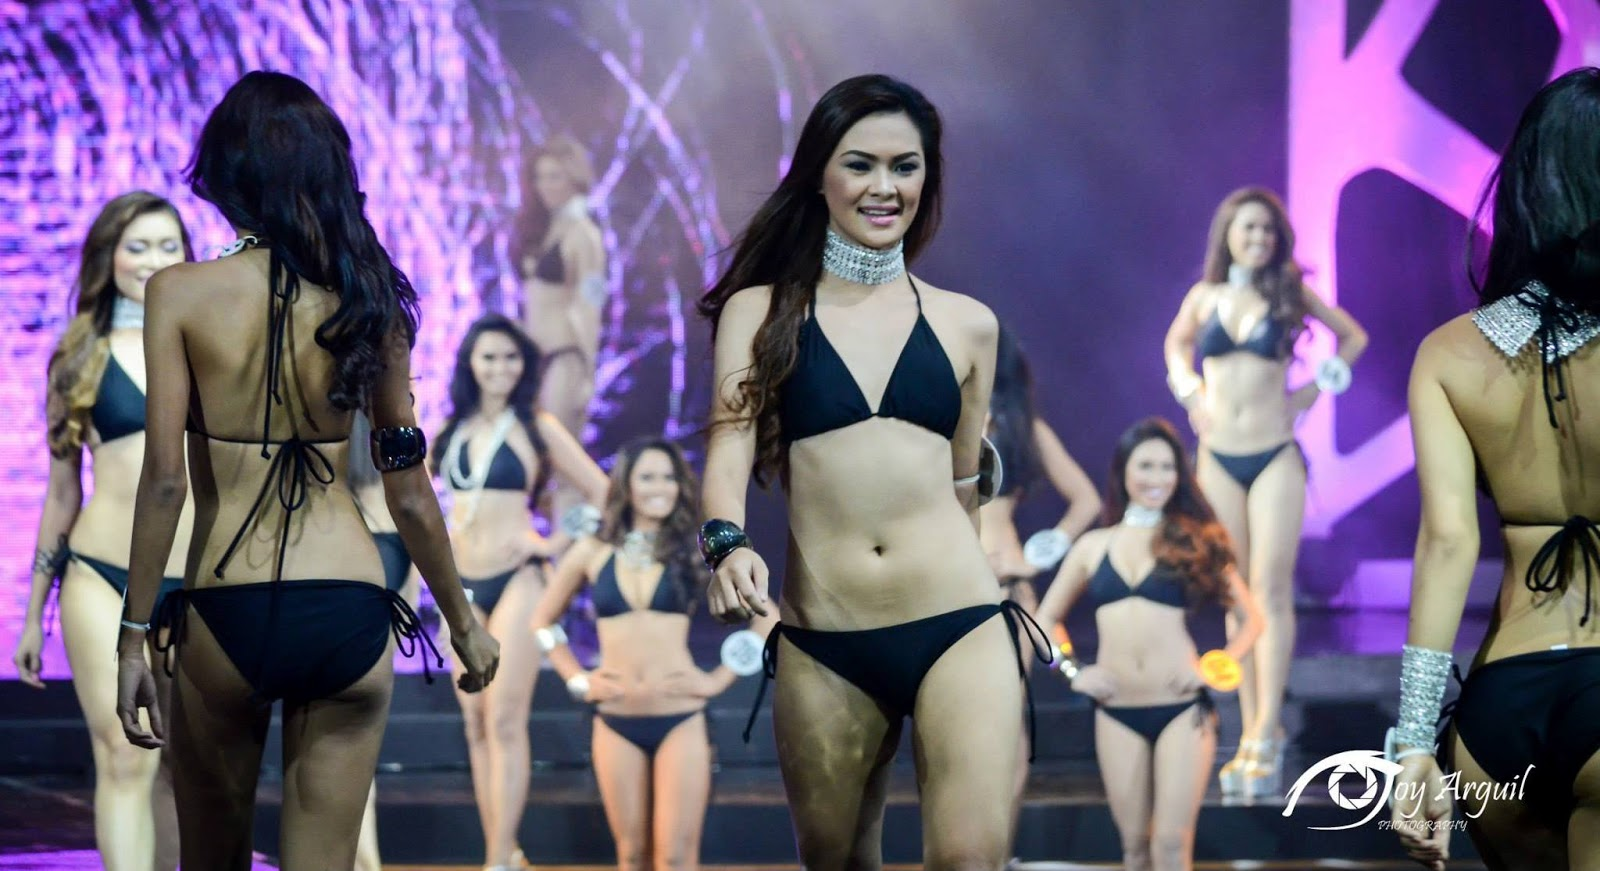 Mine very miss bikini philippines 2008 recommend you